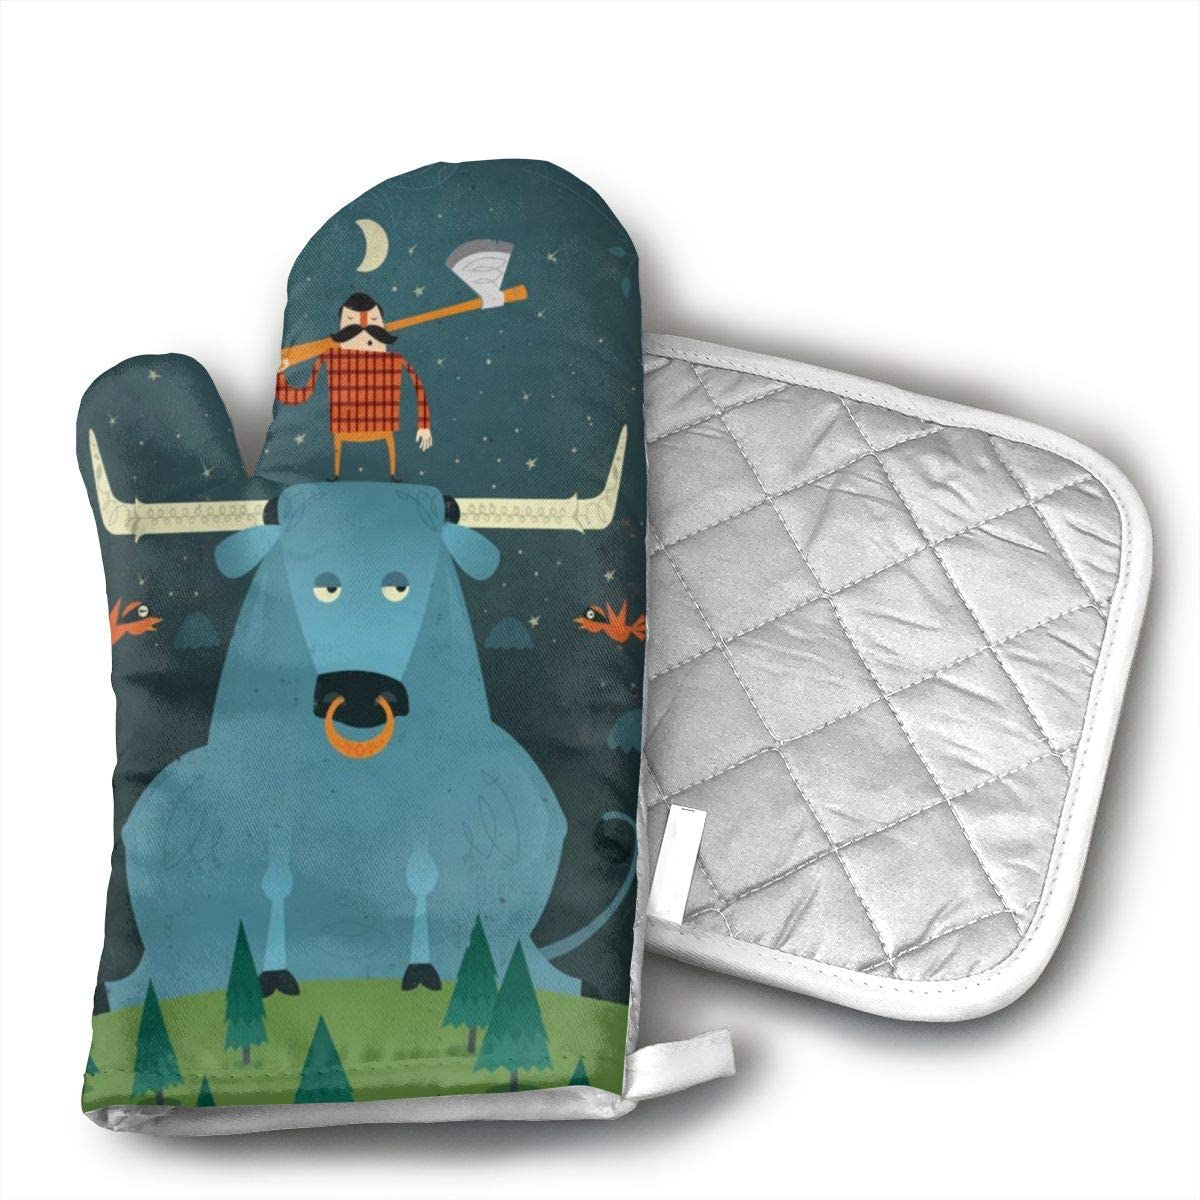 Paul Bunyan and His Blue Ox Oven Mitts and Potholders (2-Piece Sets) - Kitchen Set with Cotton Heat Resistant,Oven Gloves for BBQ Cooking Baking Grilling